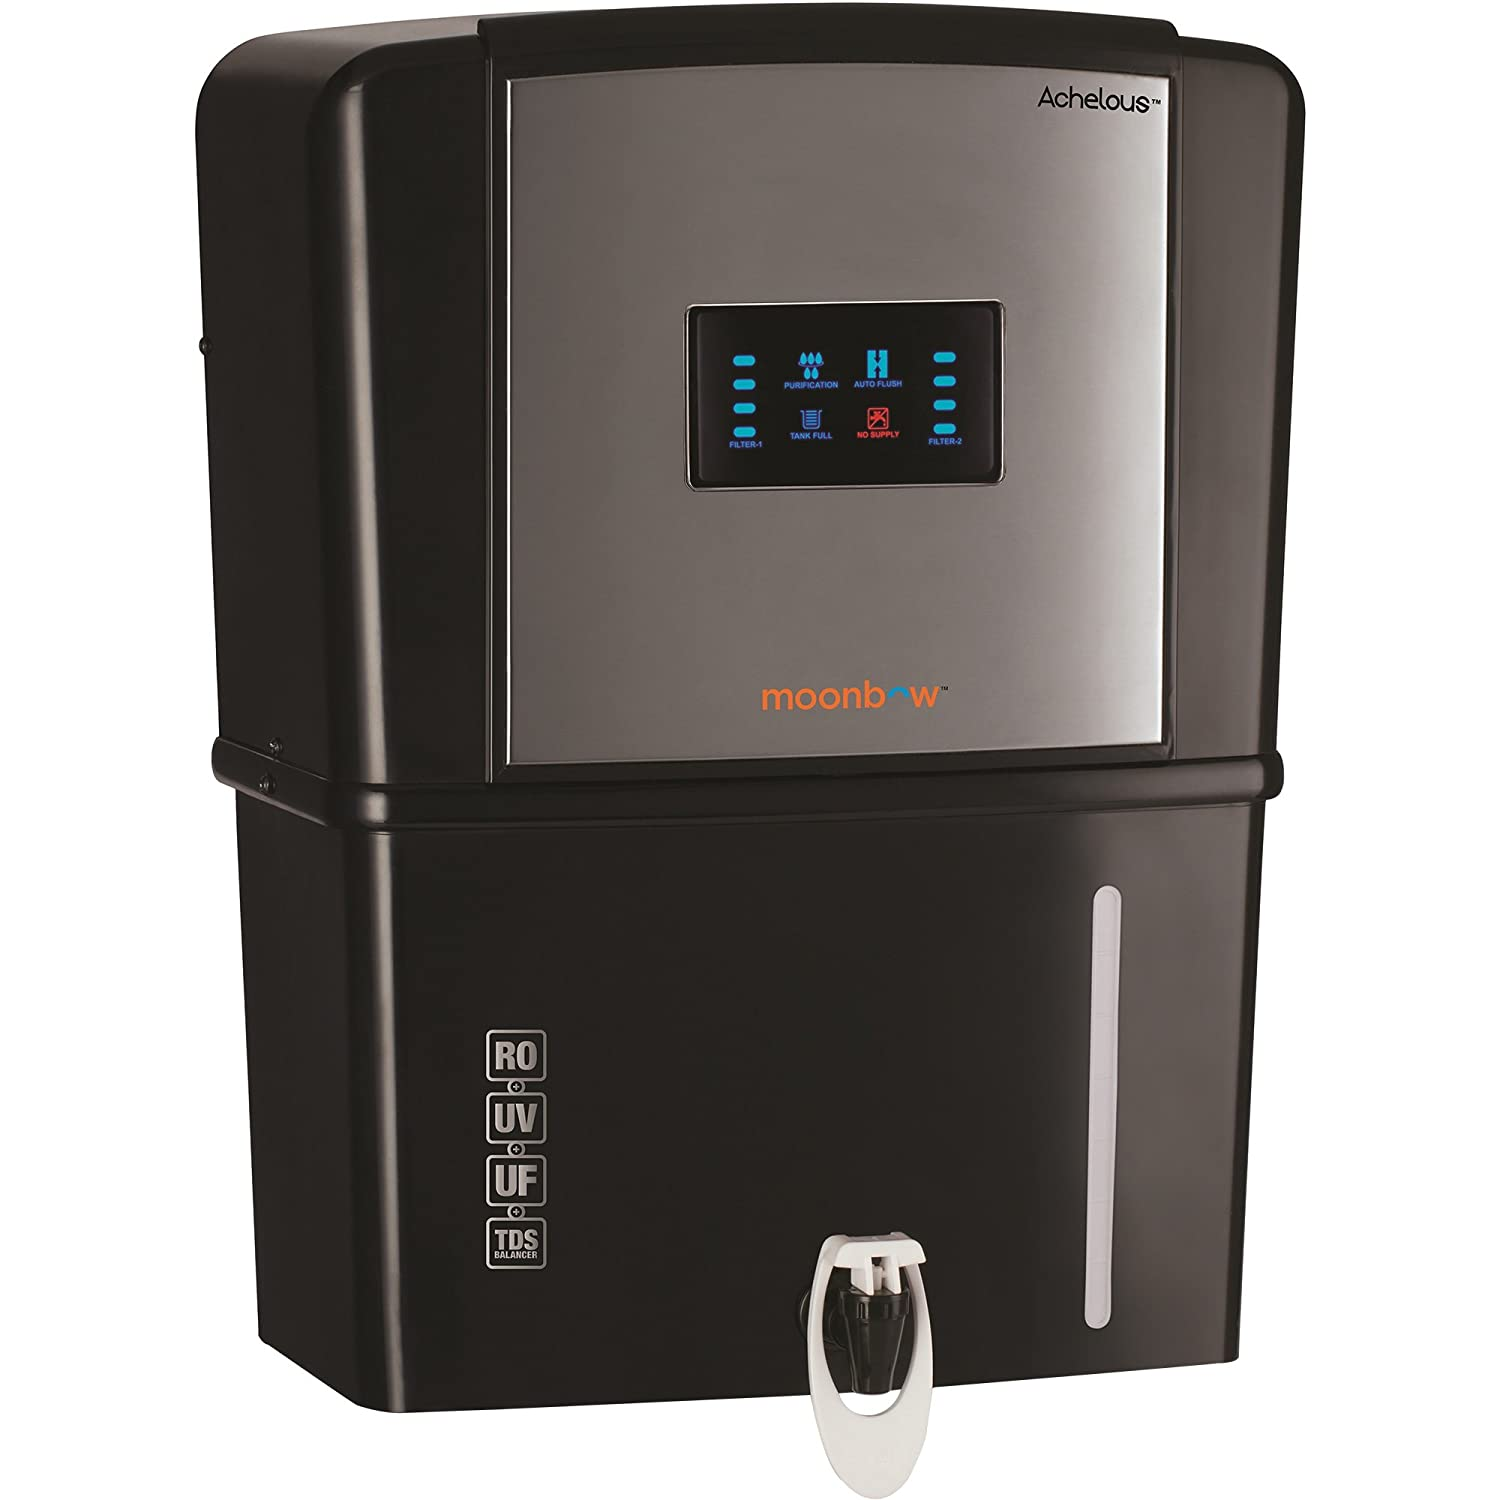 15 Best Water Purifiers below ₹20000 in India 2019 - Reviews, Price, Purchase Guide 4